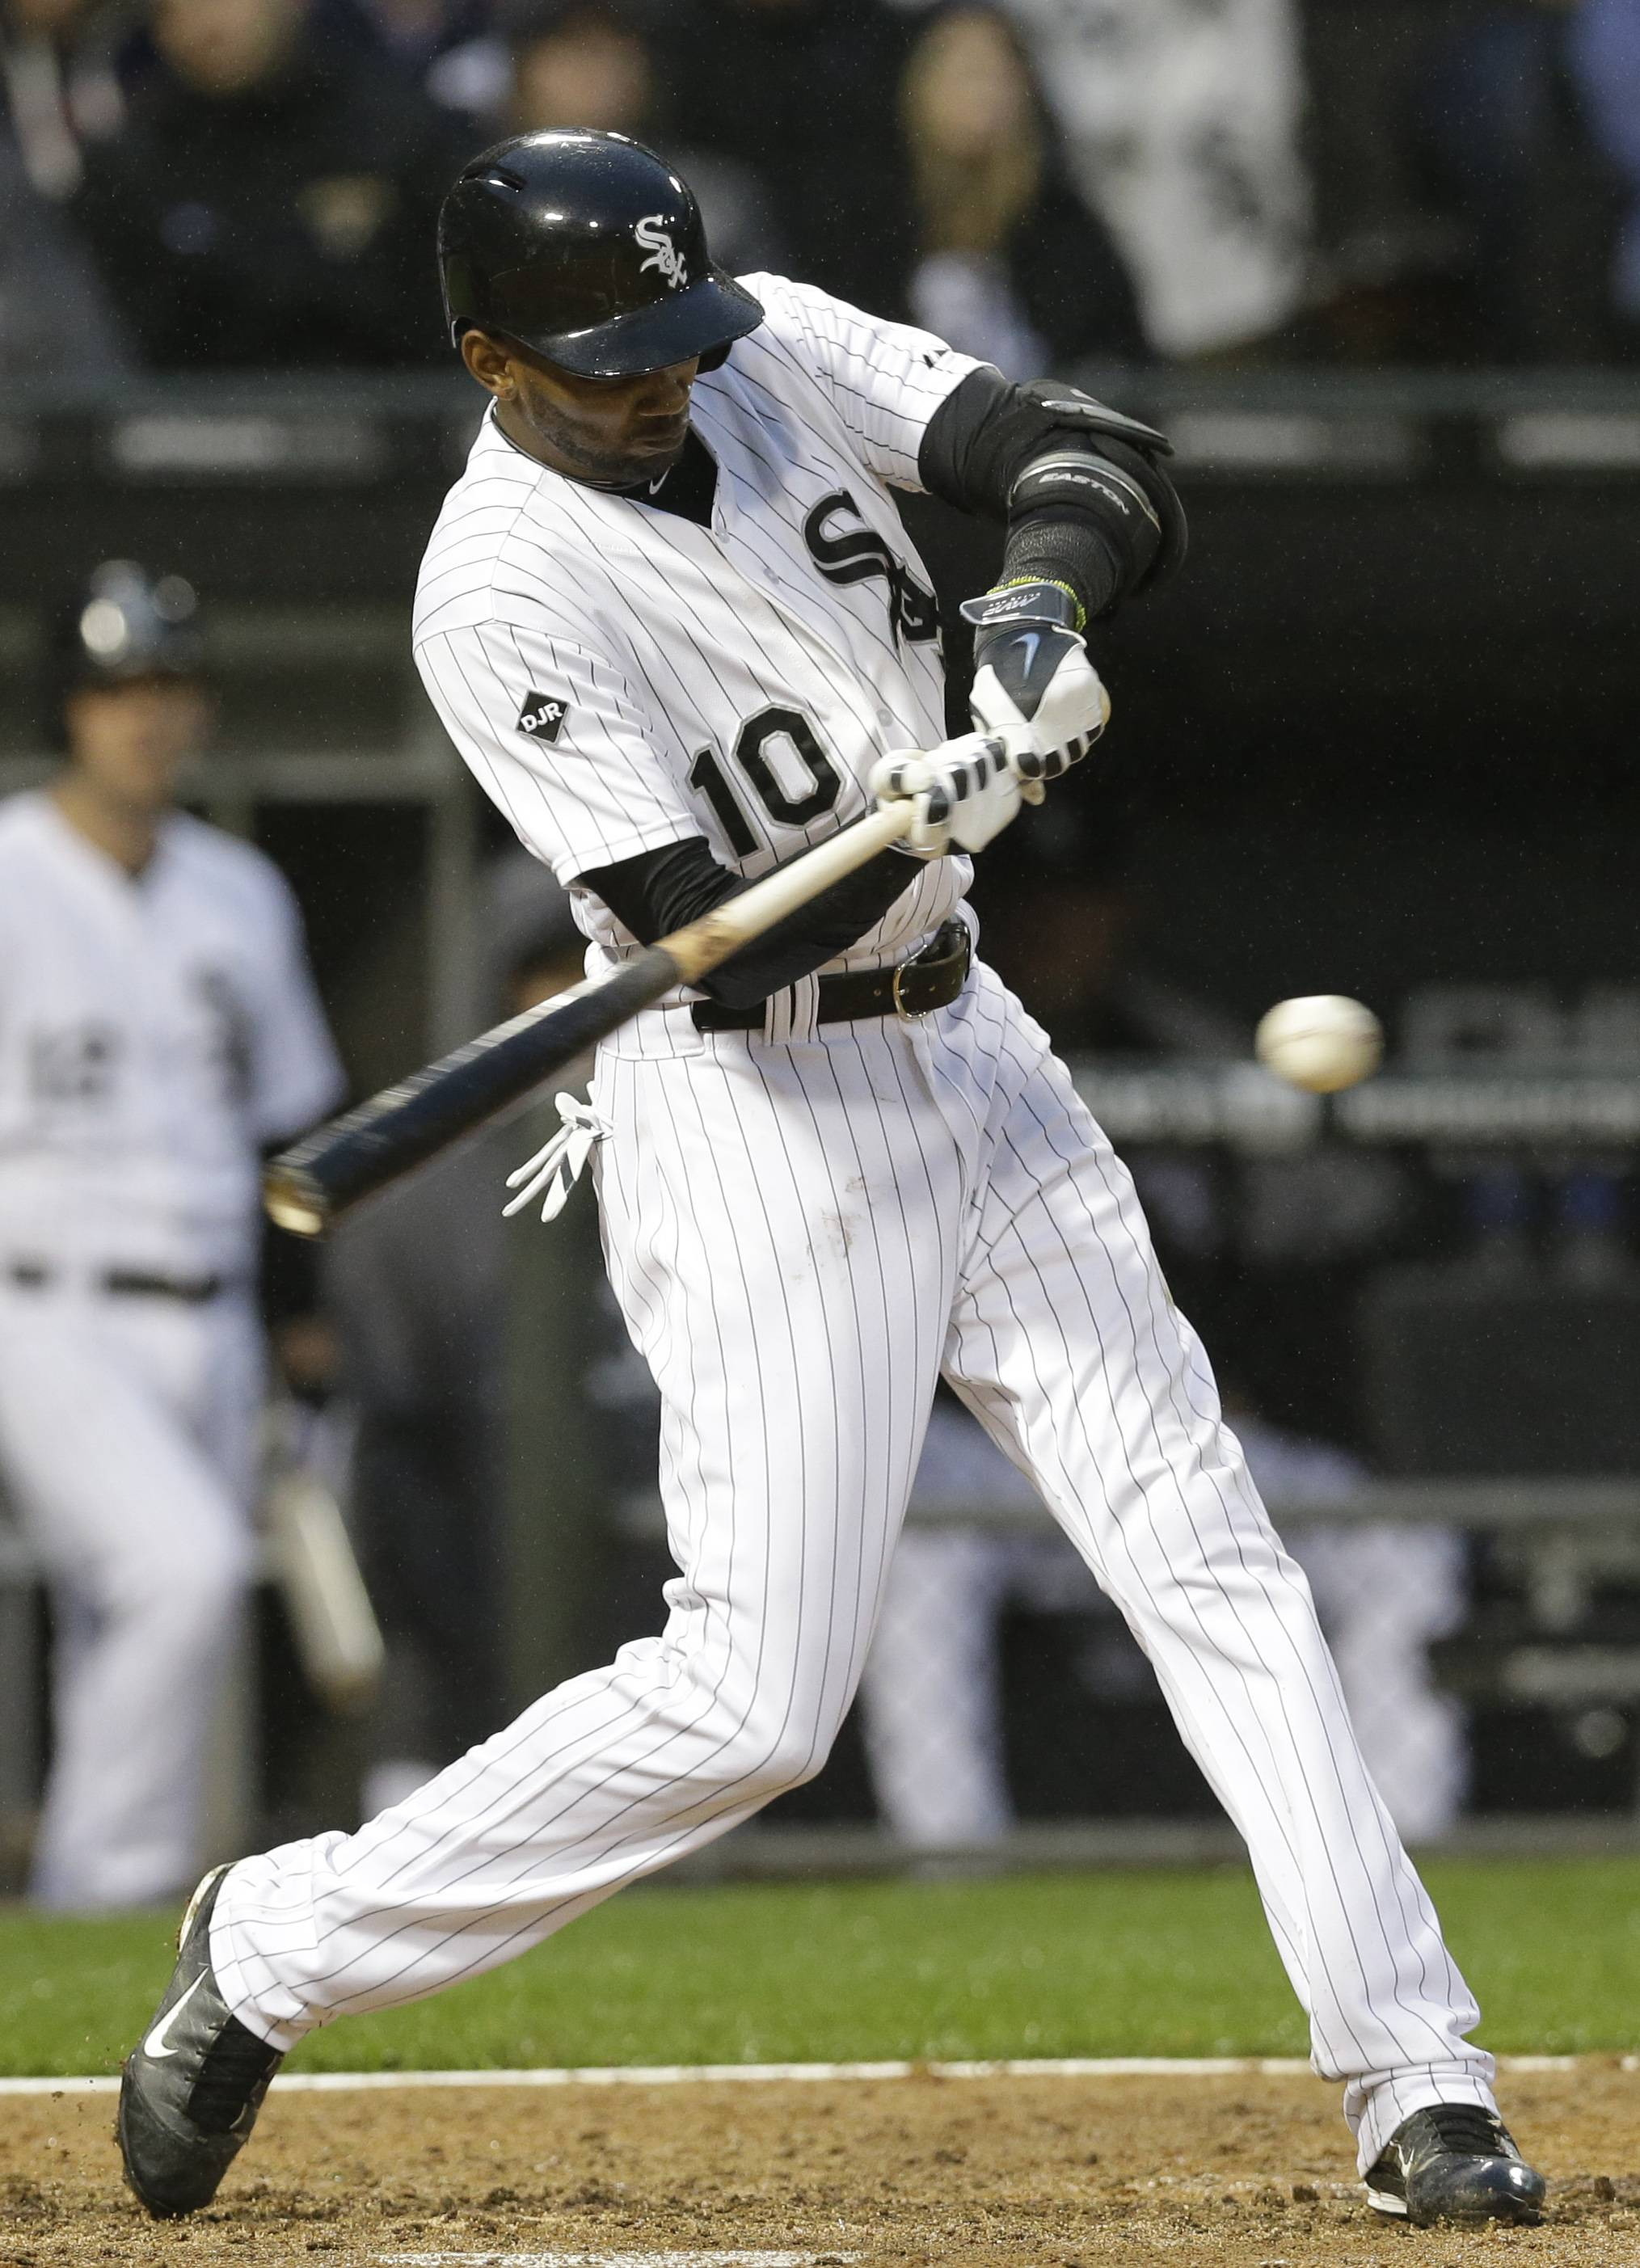 Chicago White Sox's Alexei Ramirez hits a two-run single against the Los Angeles Angels during the fourth inning of a baseball game in Chicago on Wednesday, July 2, 2014.